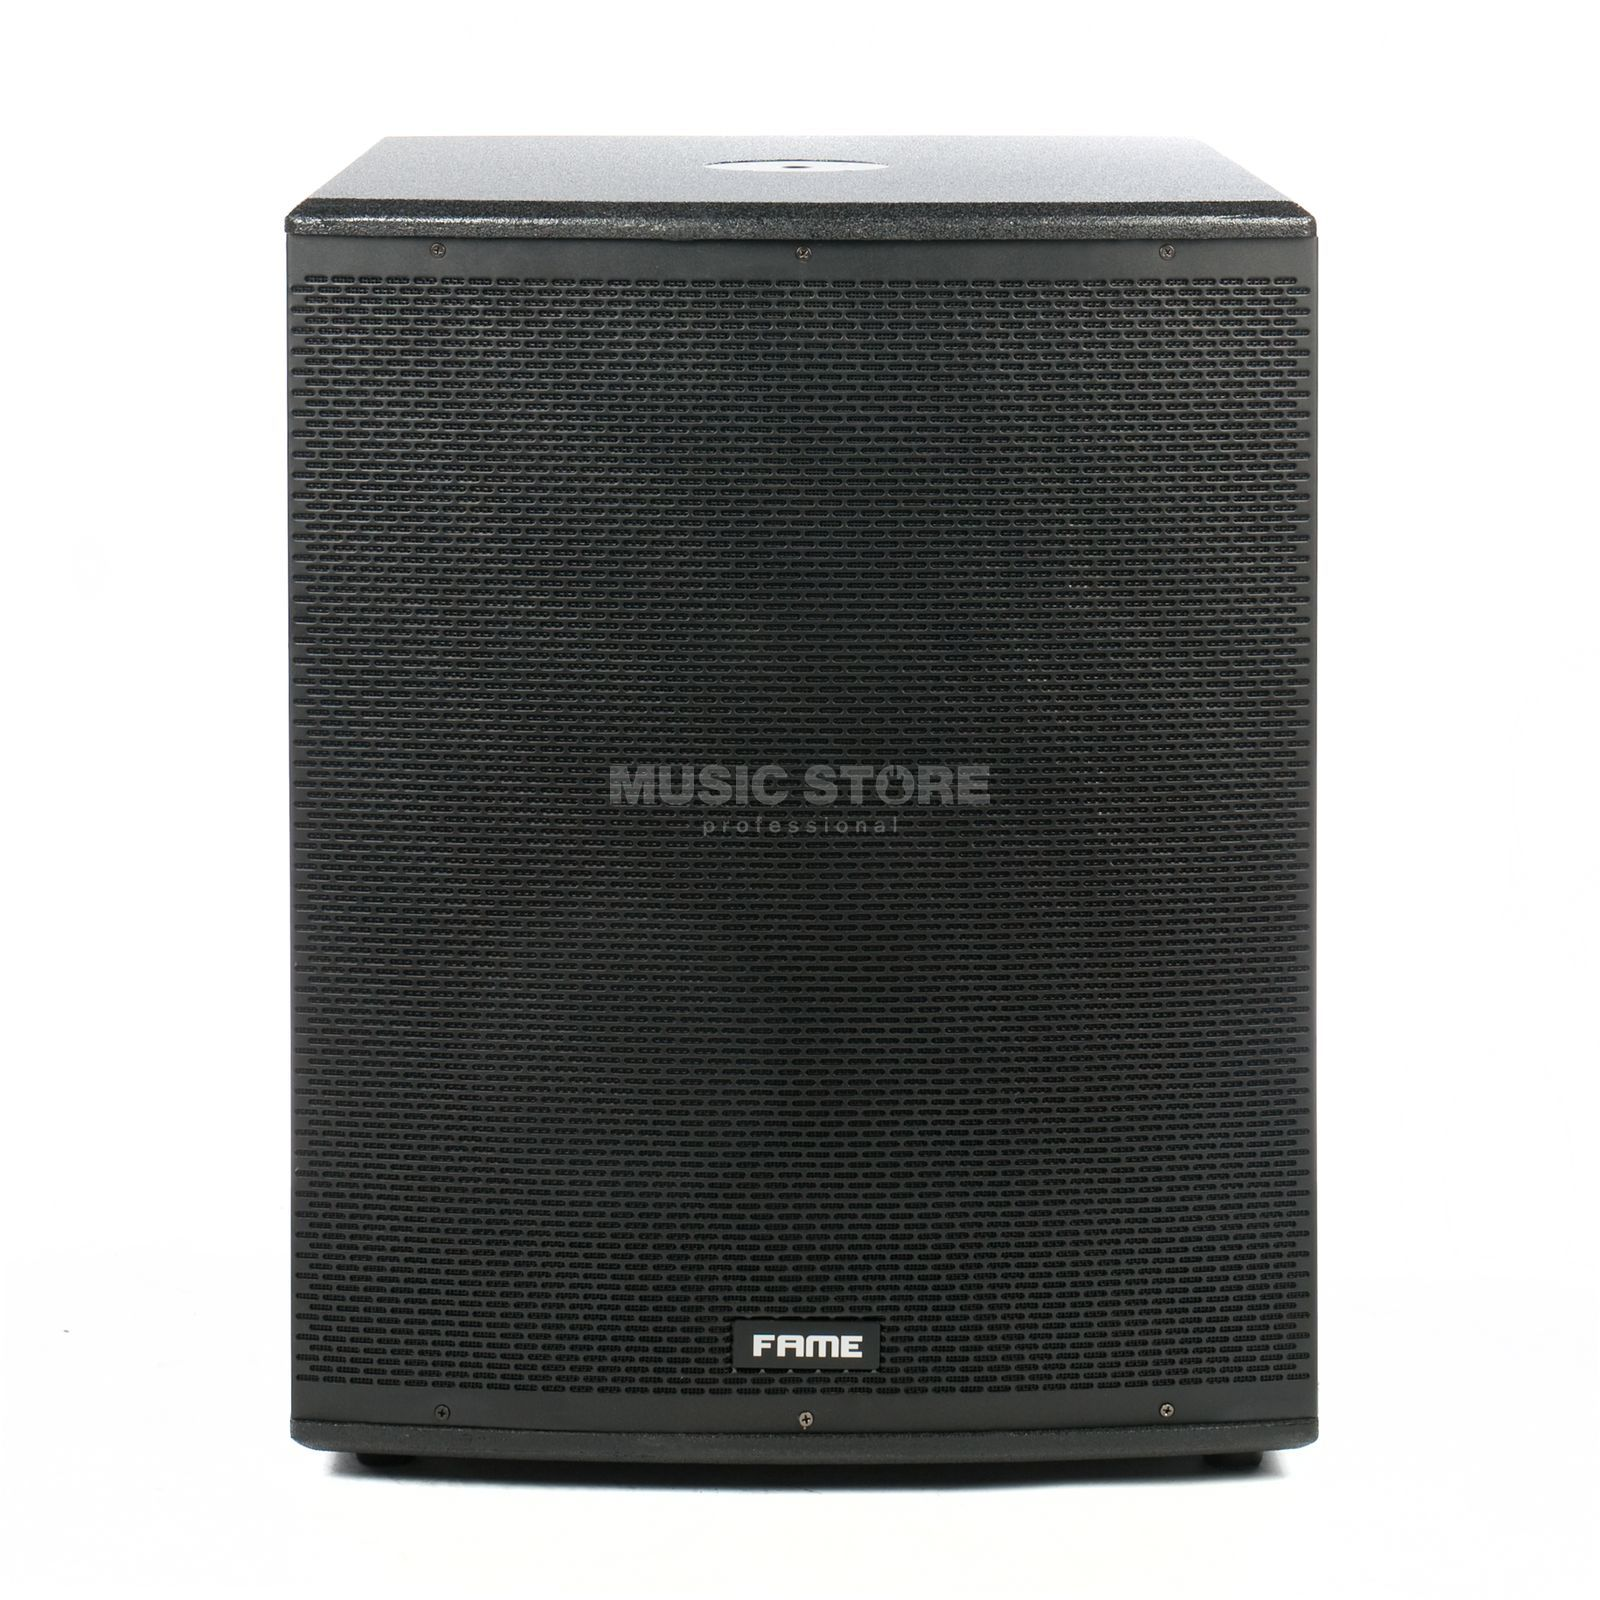 "Fame audio Challenger SUB 18P passiver  18"" Subwoofer, 600W Product Image"